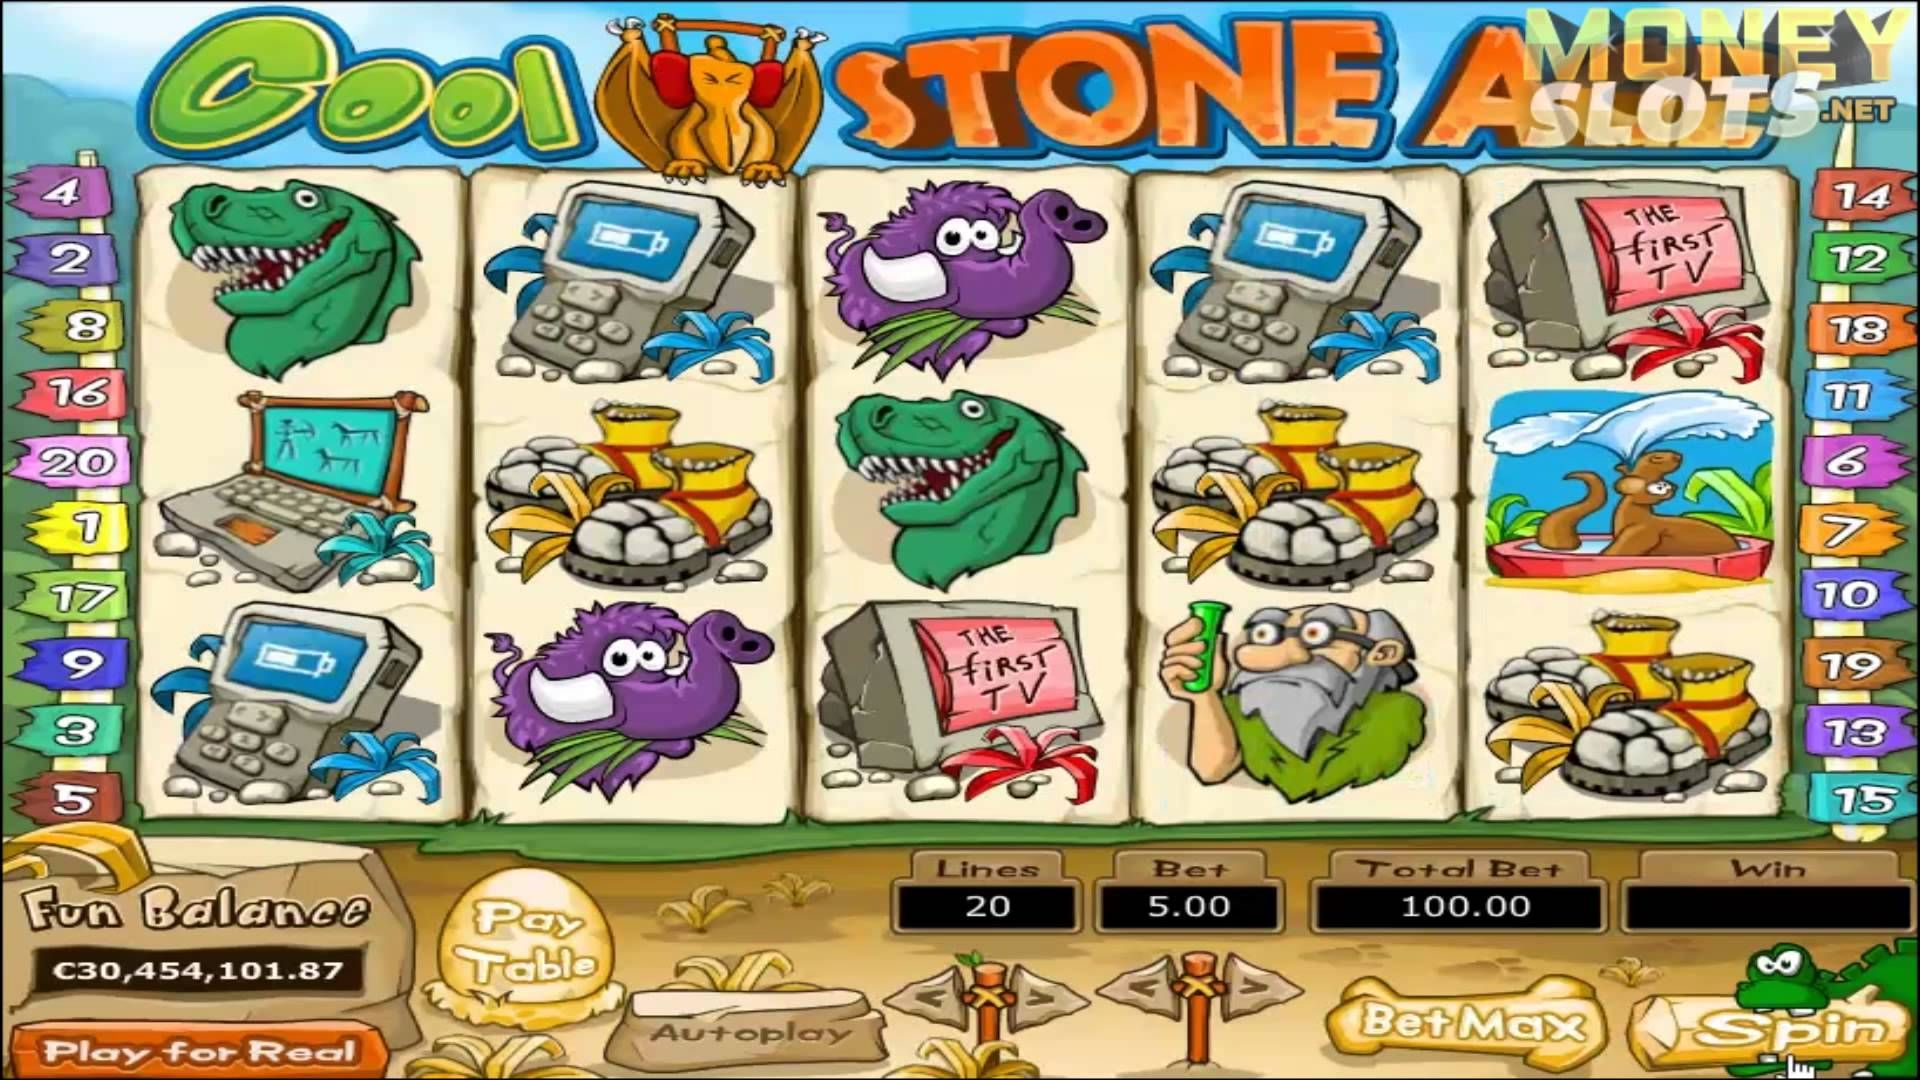 The stonemobile is the bonus symbol in Cool Stone Age.When three or more of these cave-style racing machines come to a halt on the reels, the Caveman Cruiser bonus feature will be launched.This game will be played on another screen and you will be steering the slinky stonemobile/5(2).